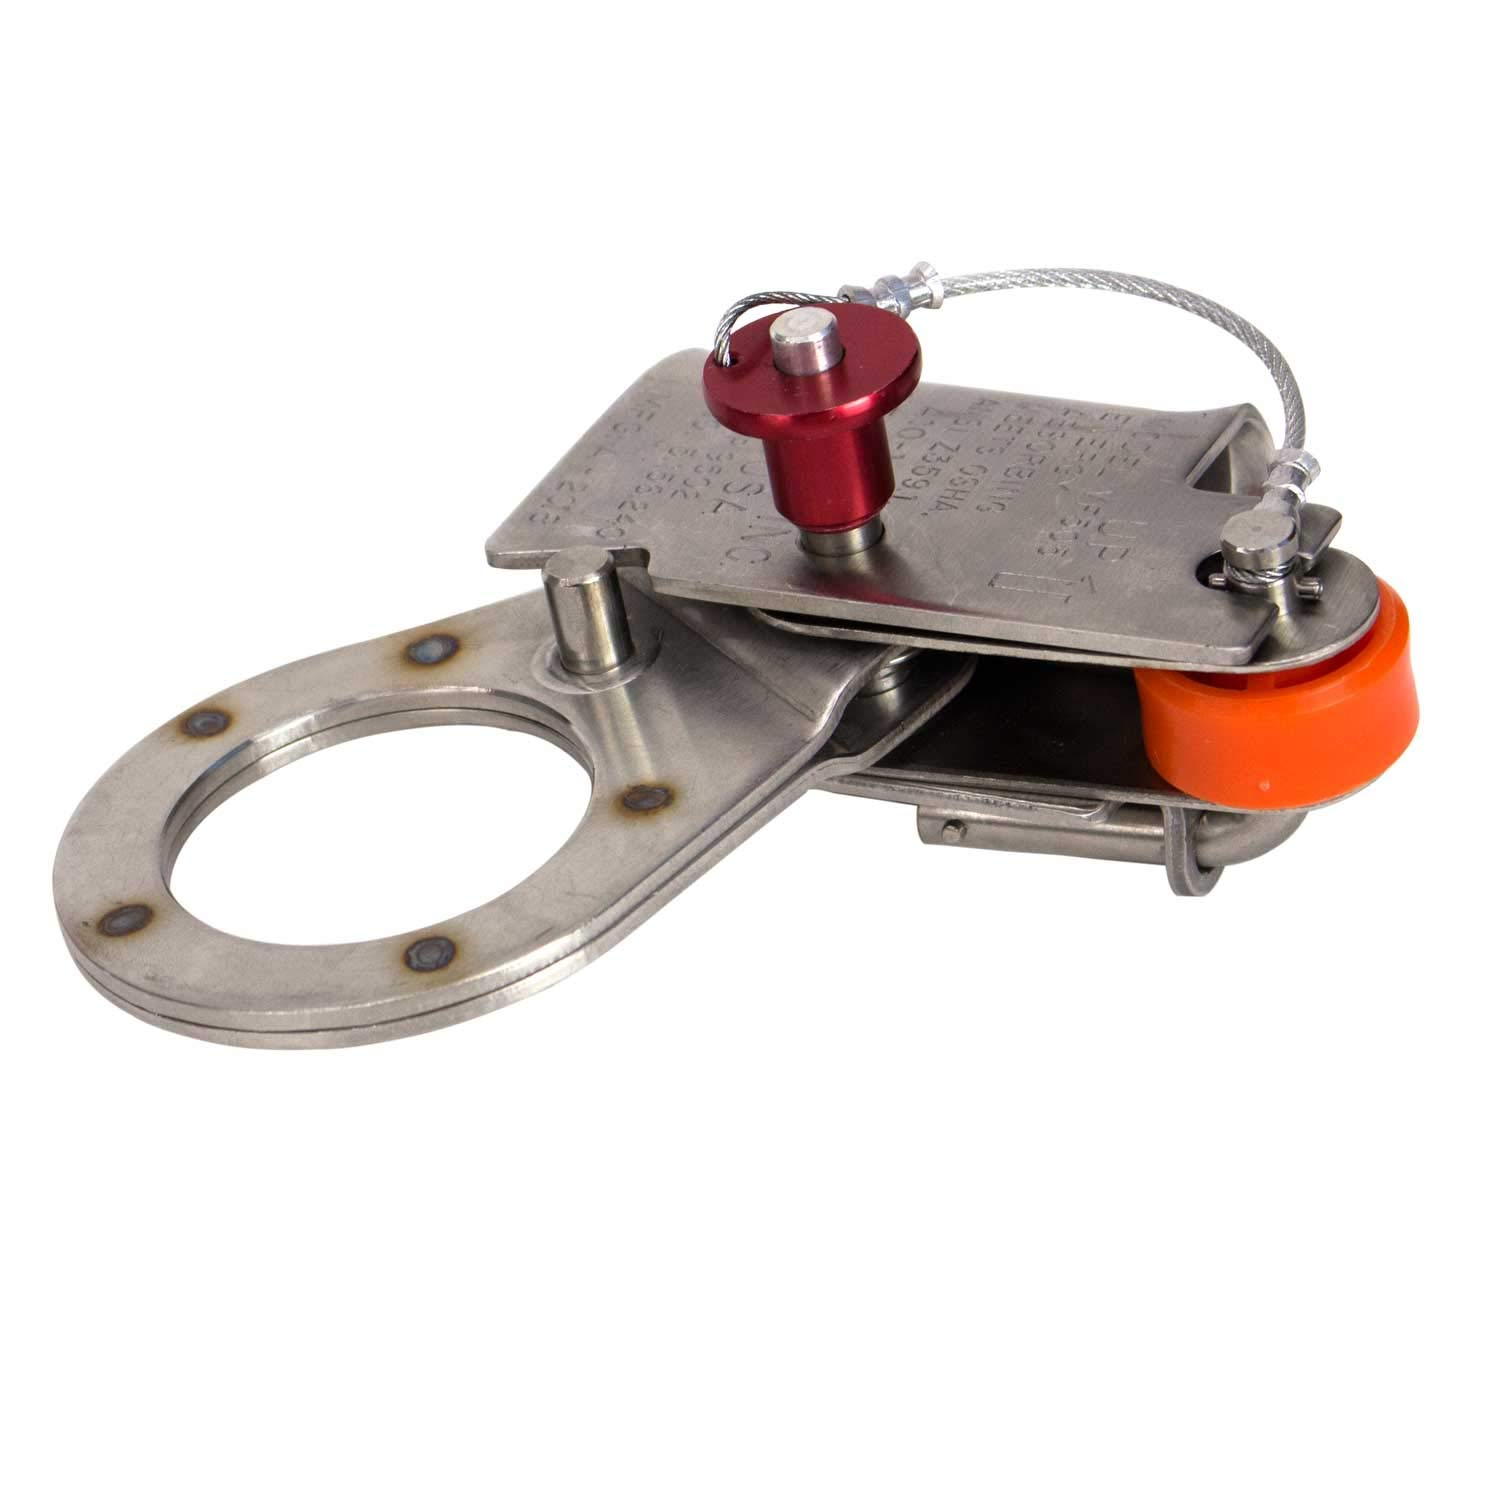 RK Fall Protection VF505 5/8-Inch Automatic Energy Absorbing Rope Grab by RK Industries Group, Inc (Image #3)